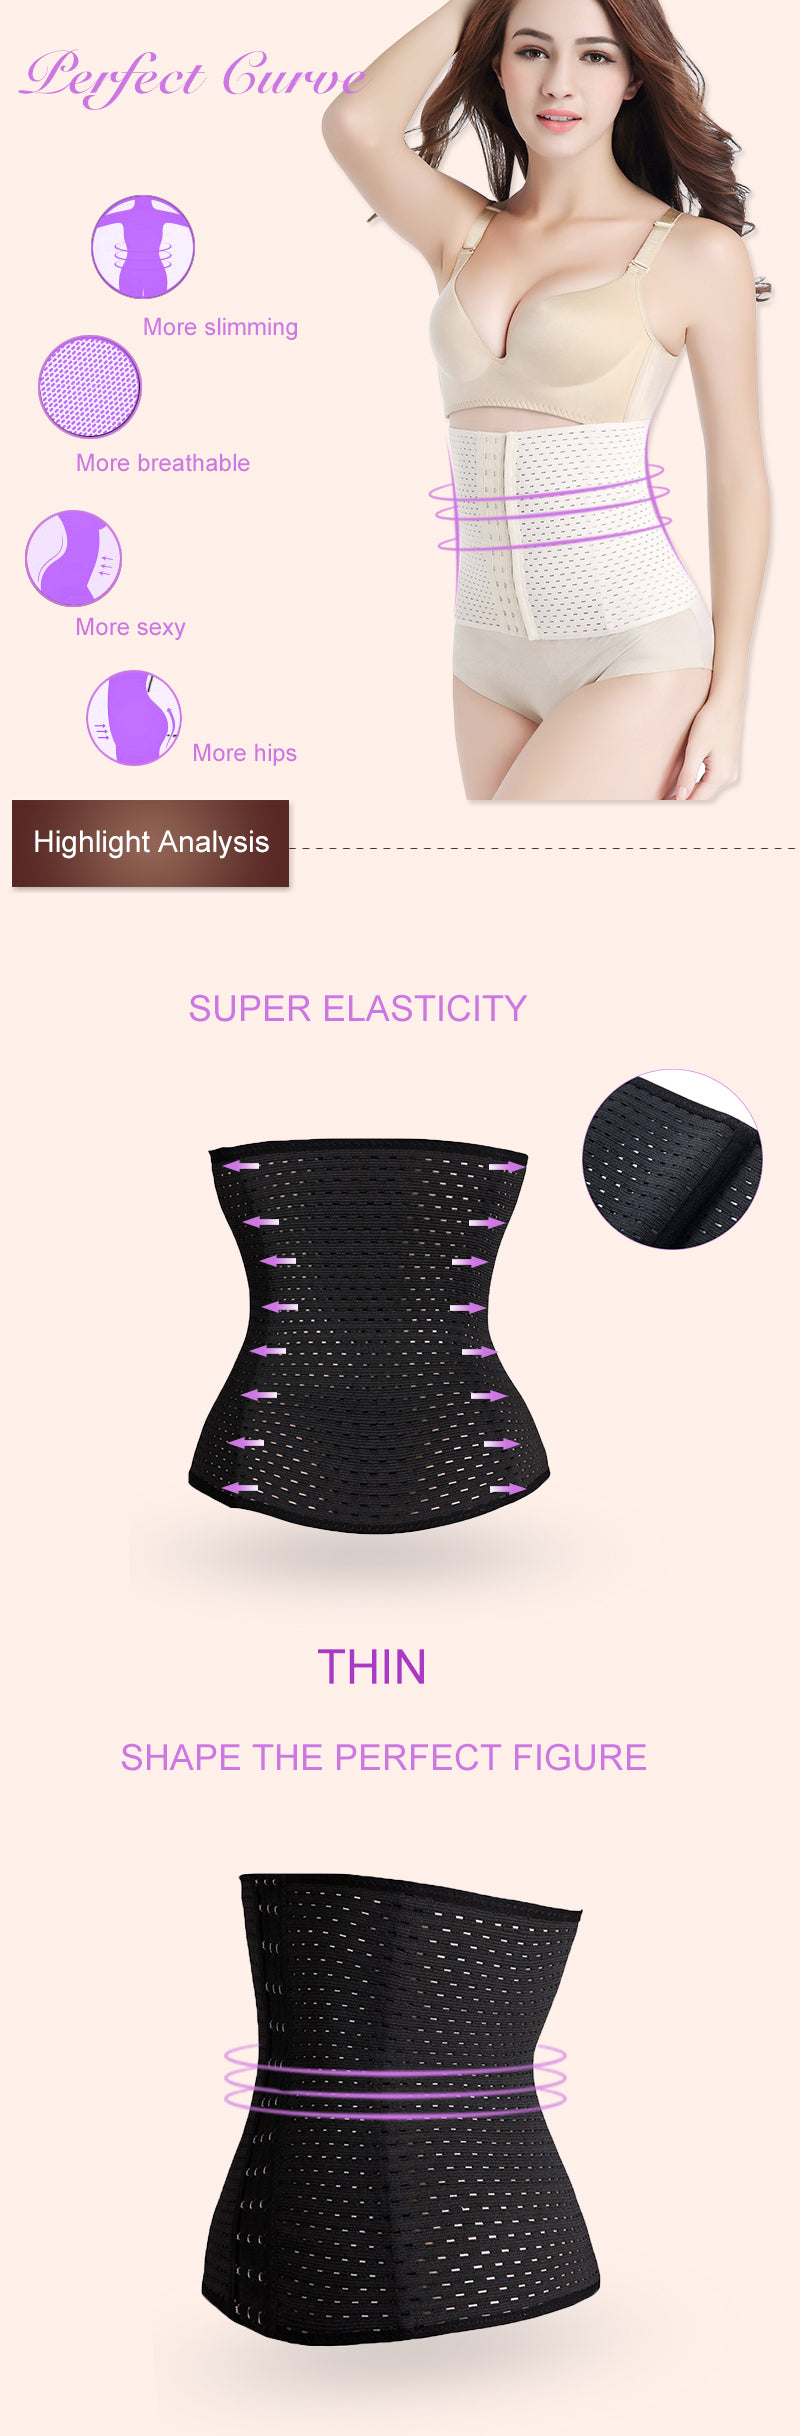 Hot Body Waist Shaper